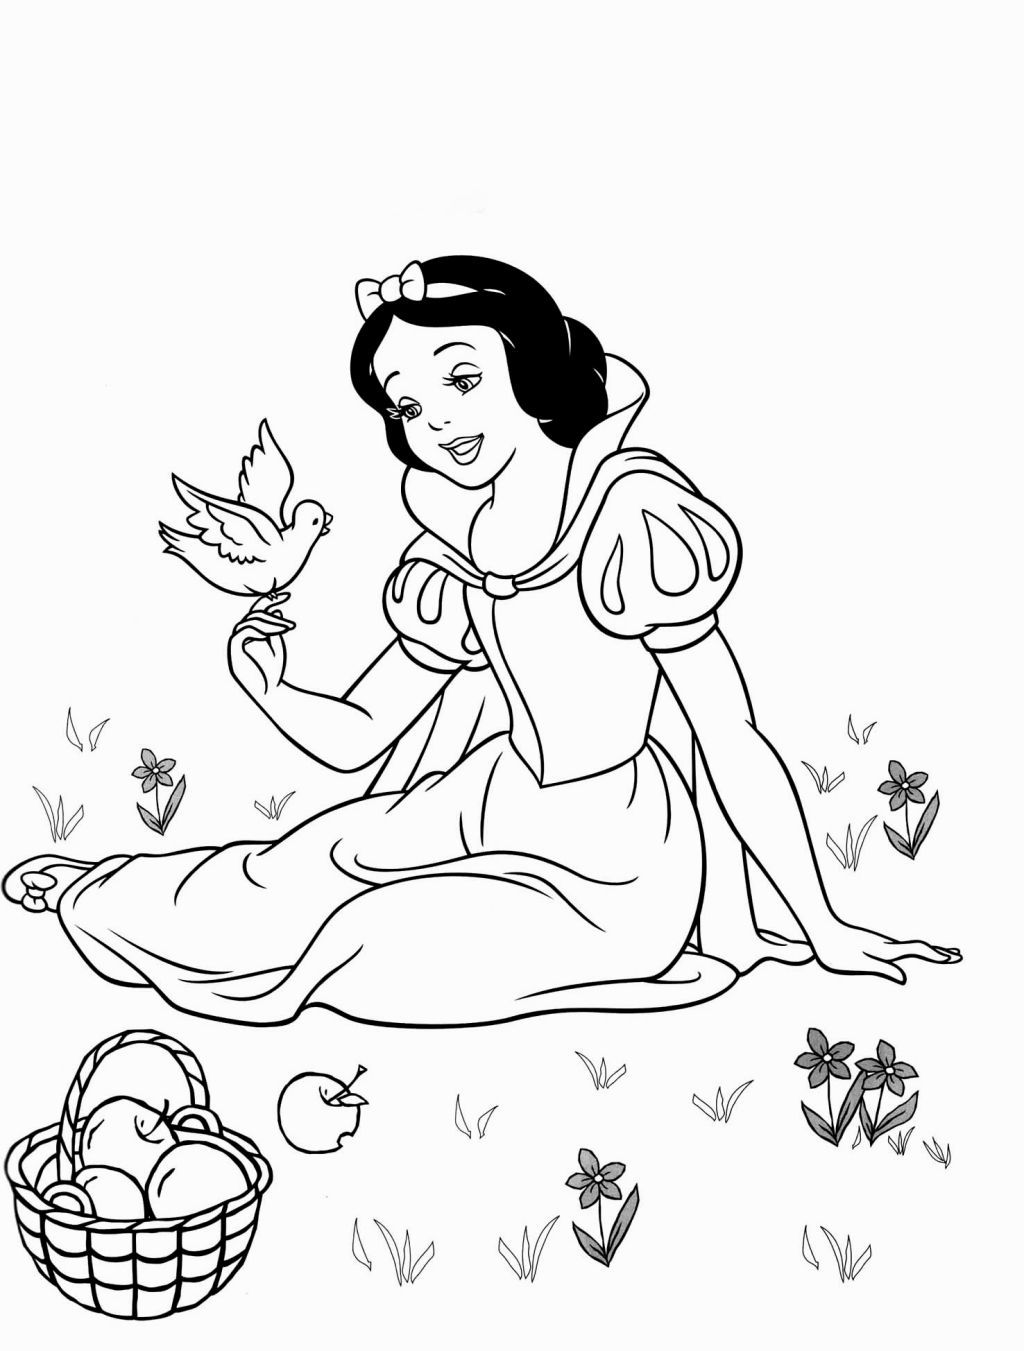 Snow White Coloring Book Disney Coloring Pages Disney Princess Coloring Pages Snow White Coloring Pages